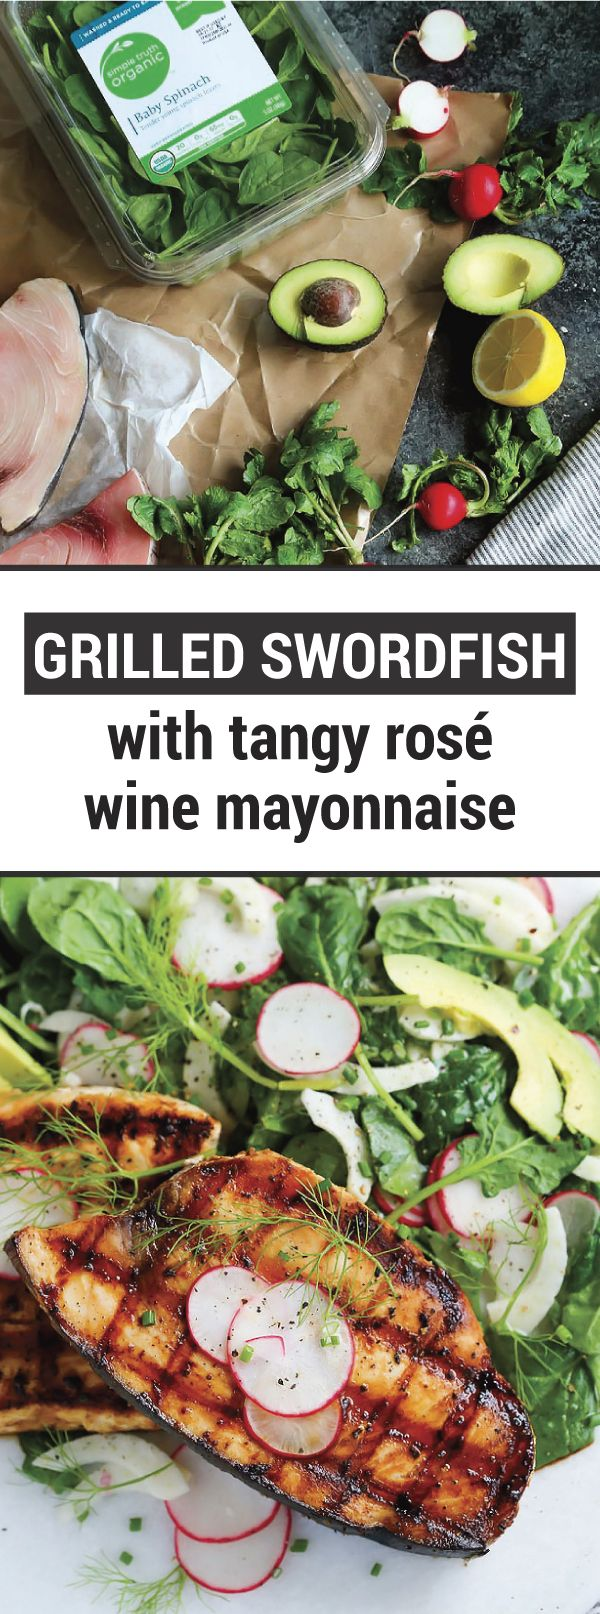 62 best seafood recipes images on pinterest seafood recipes